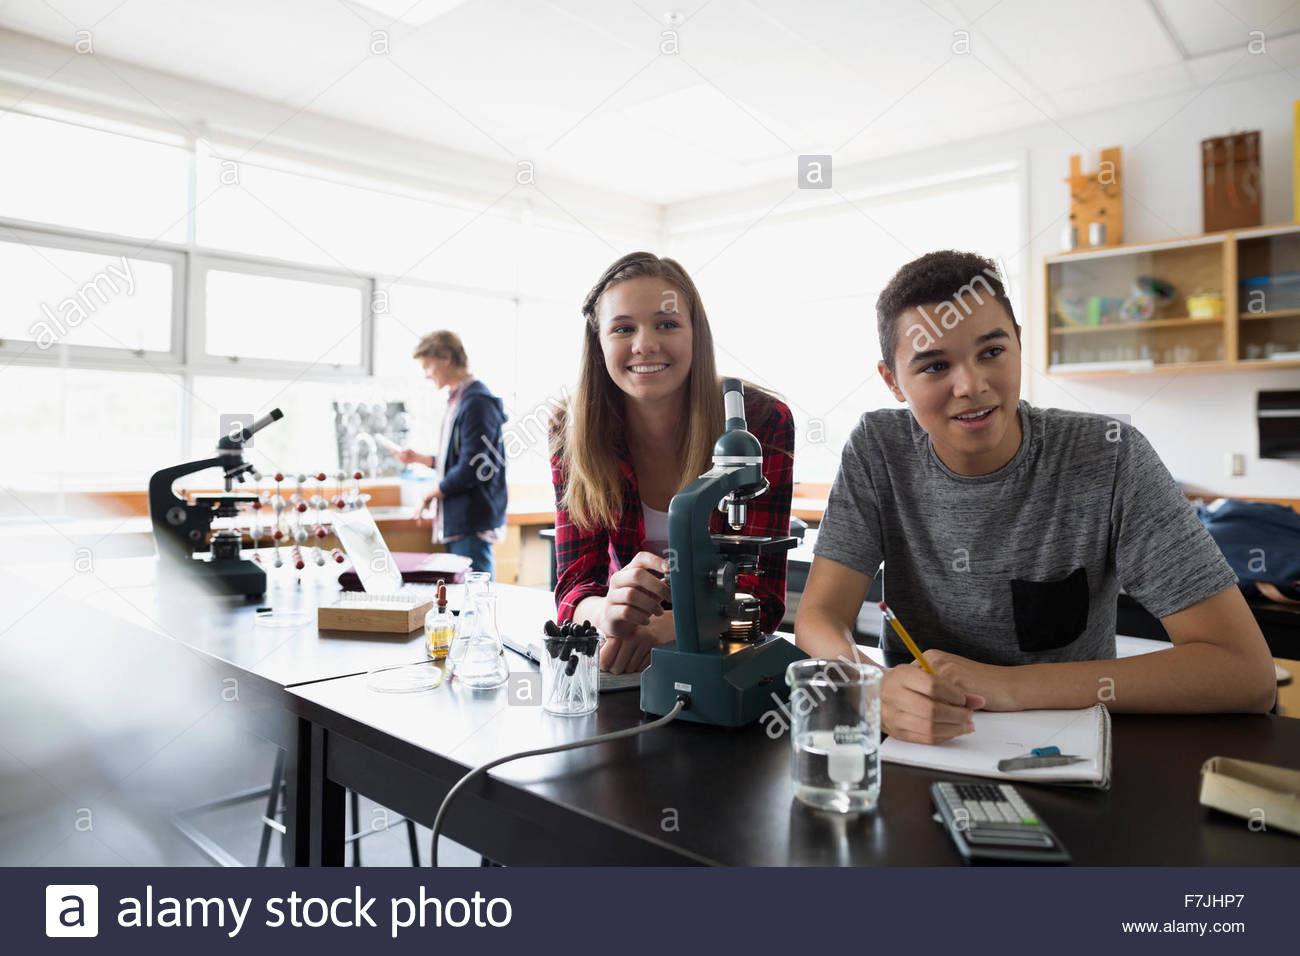 High school students at microscope science laboratory classroom - Stock Image